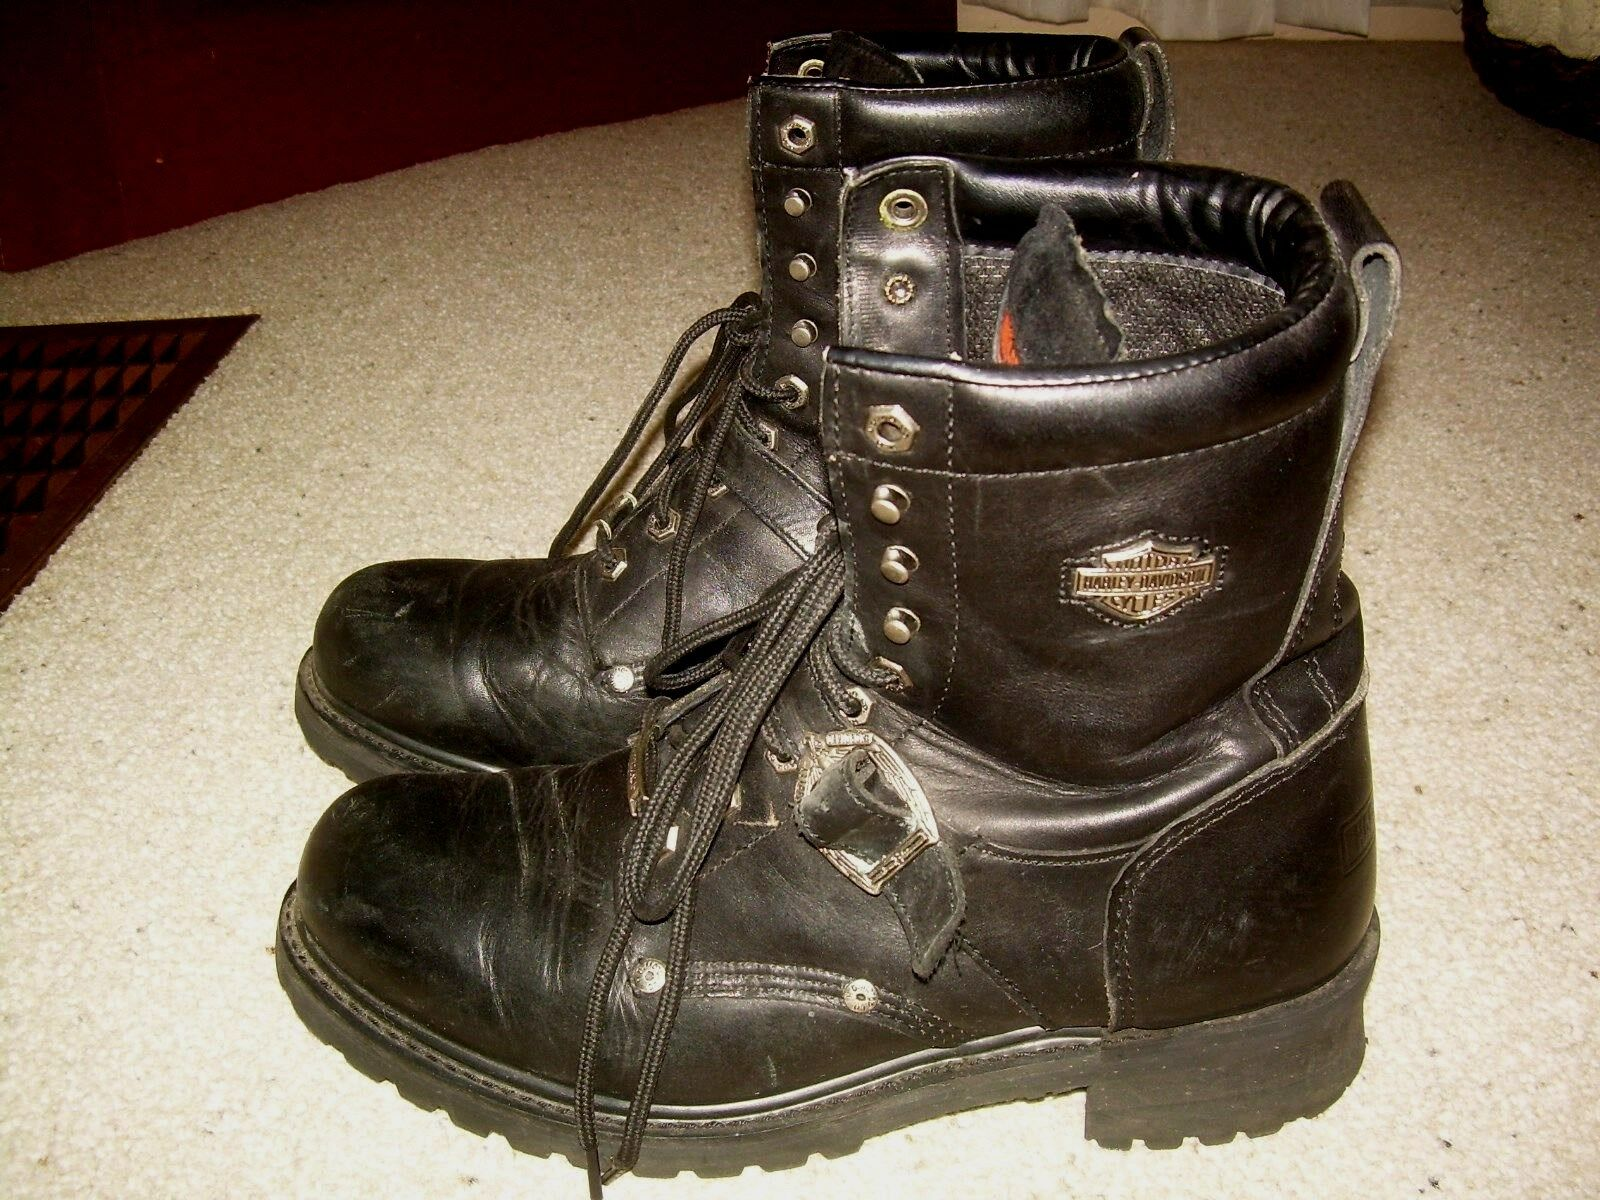 HARLEY DAVIDSON Motorcycles Black Leather Faded Glory Biker Boots 12 FREE SHIP